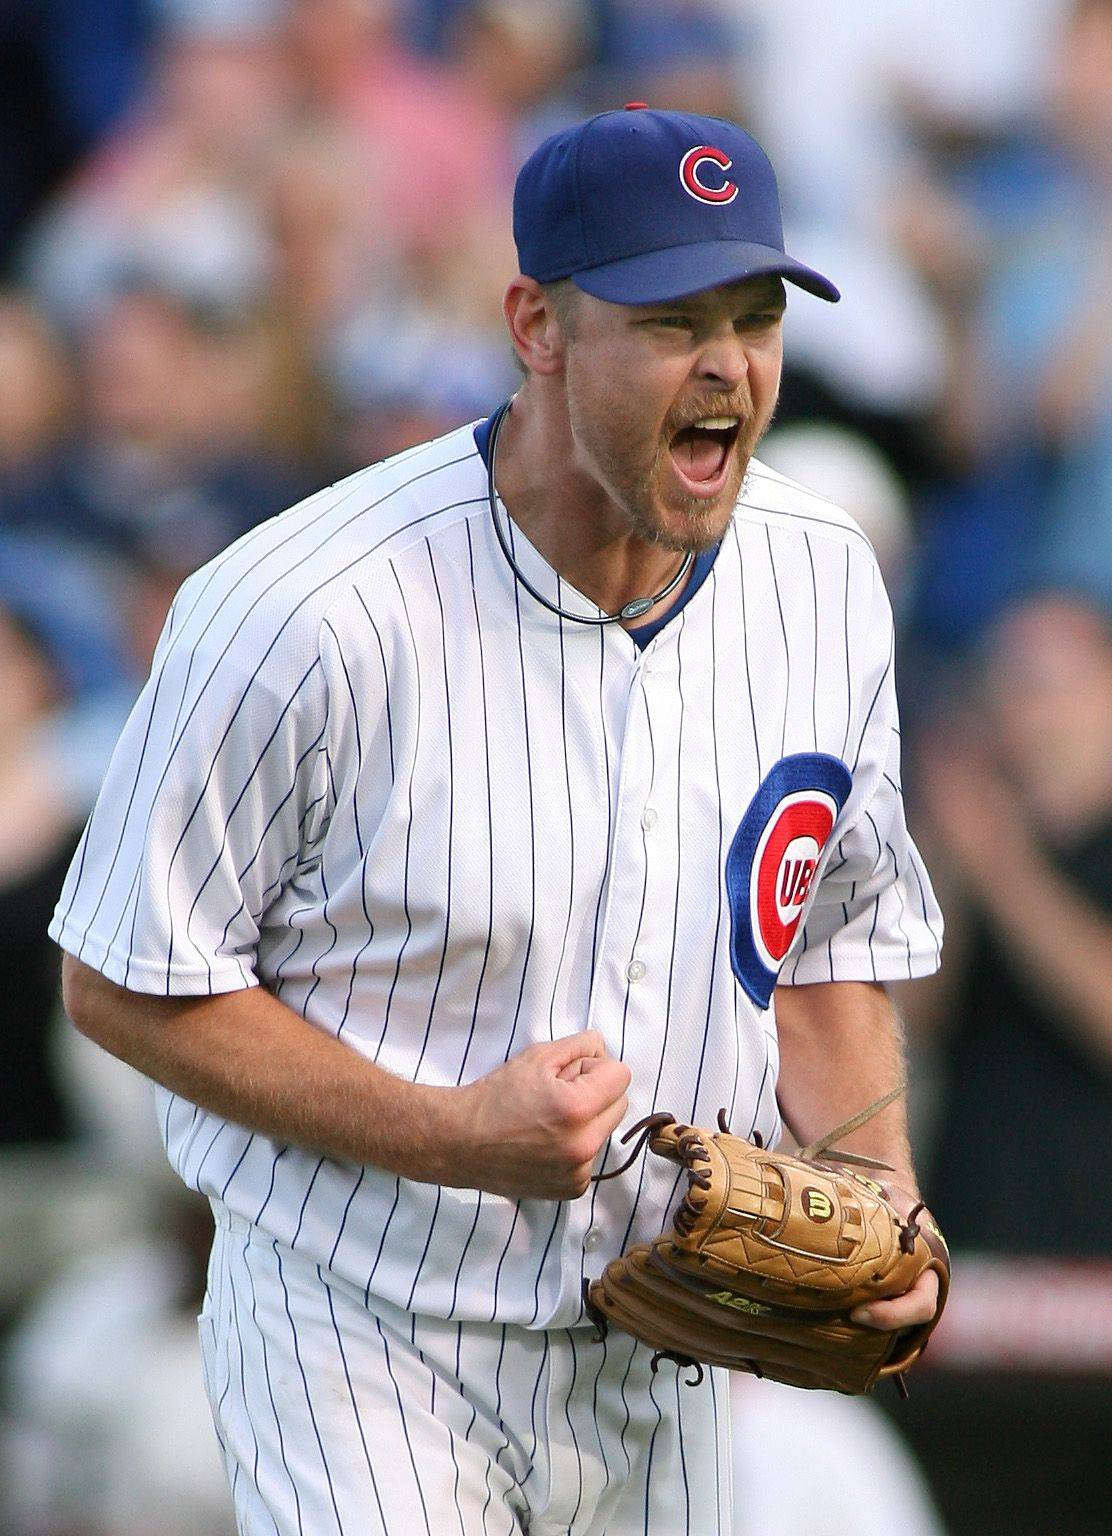 DANIEL WHITE/dwhite@dailyherald.com ¬ The Chicago Cubs' Kerry Wood leaves the field pumped up after getting out of a jam in the 12th inning against the Brewers. ¬